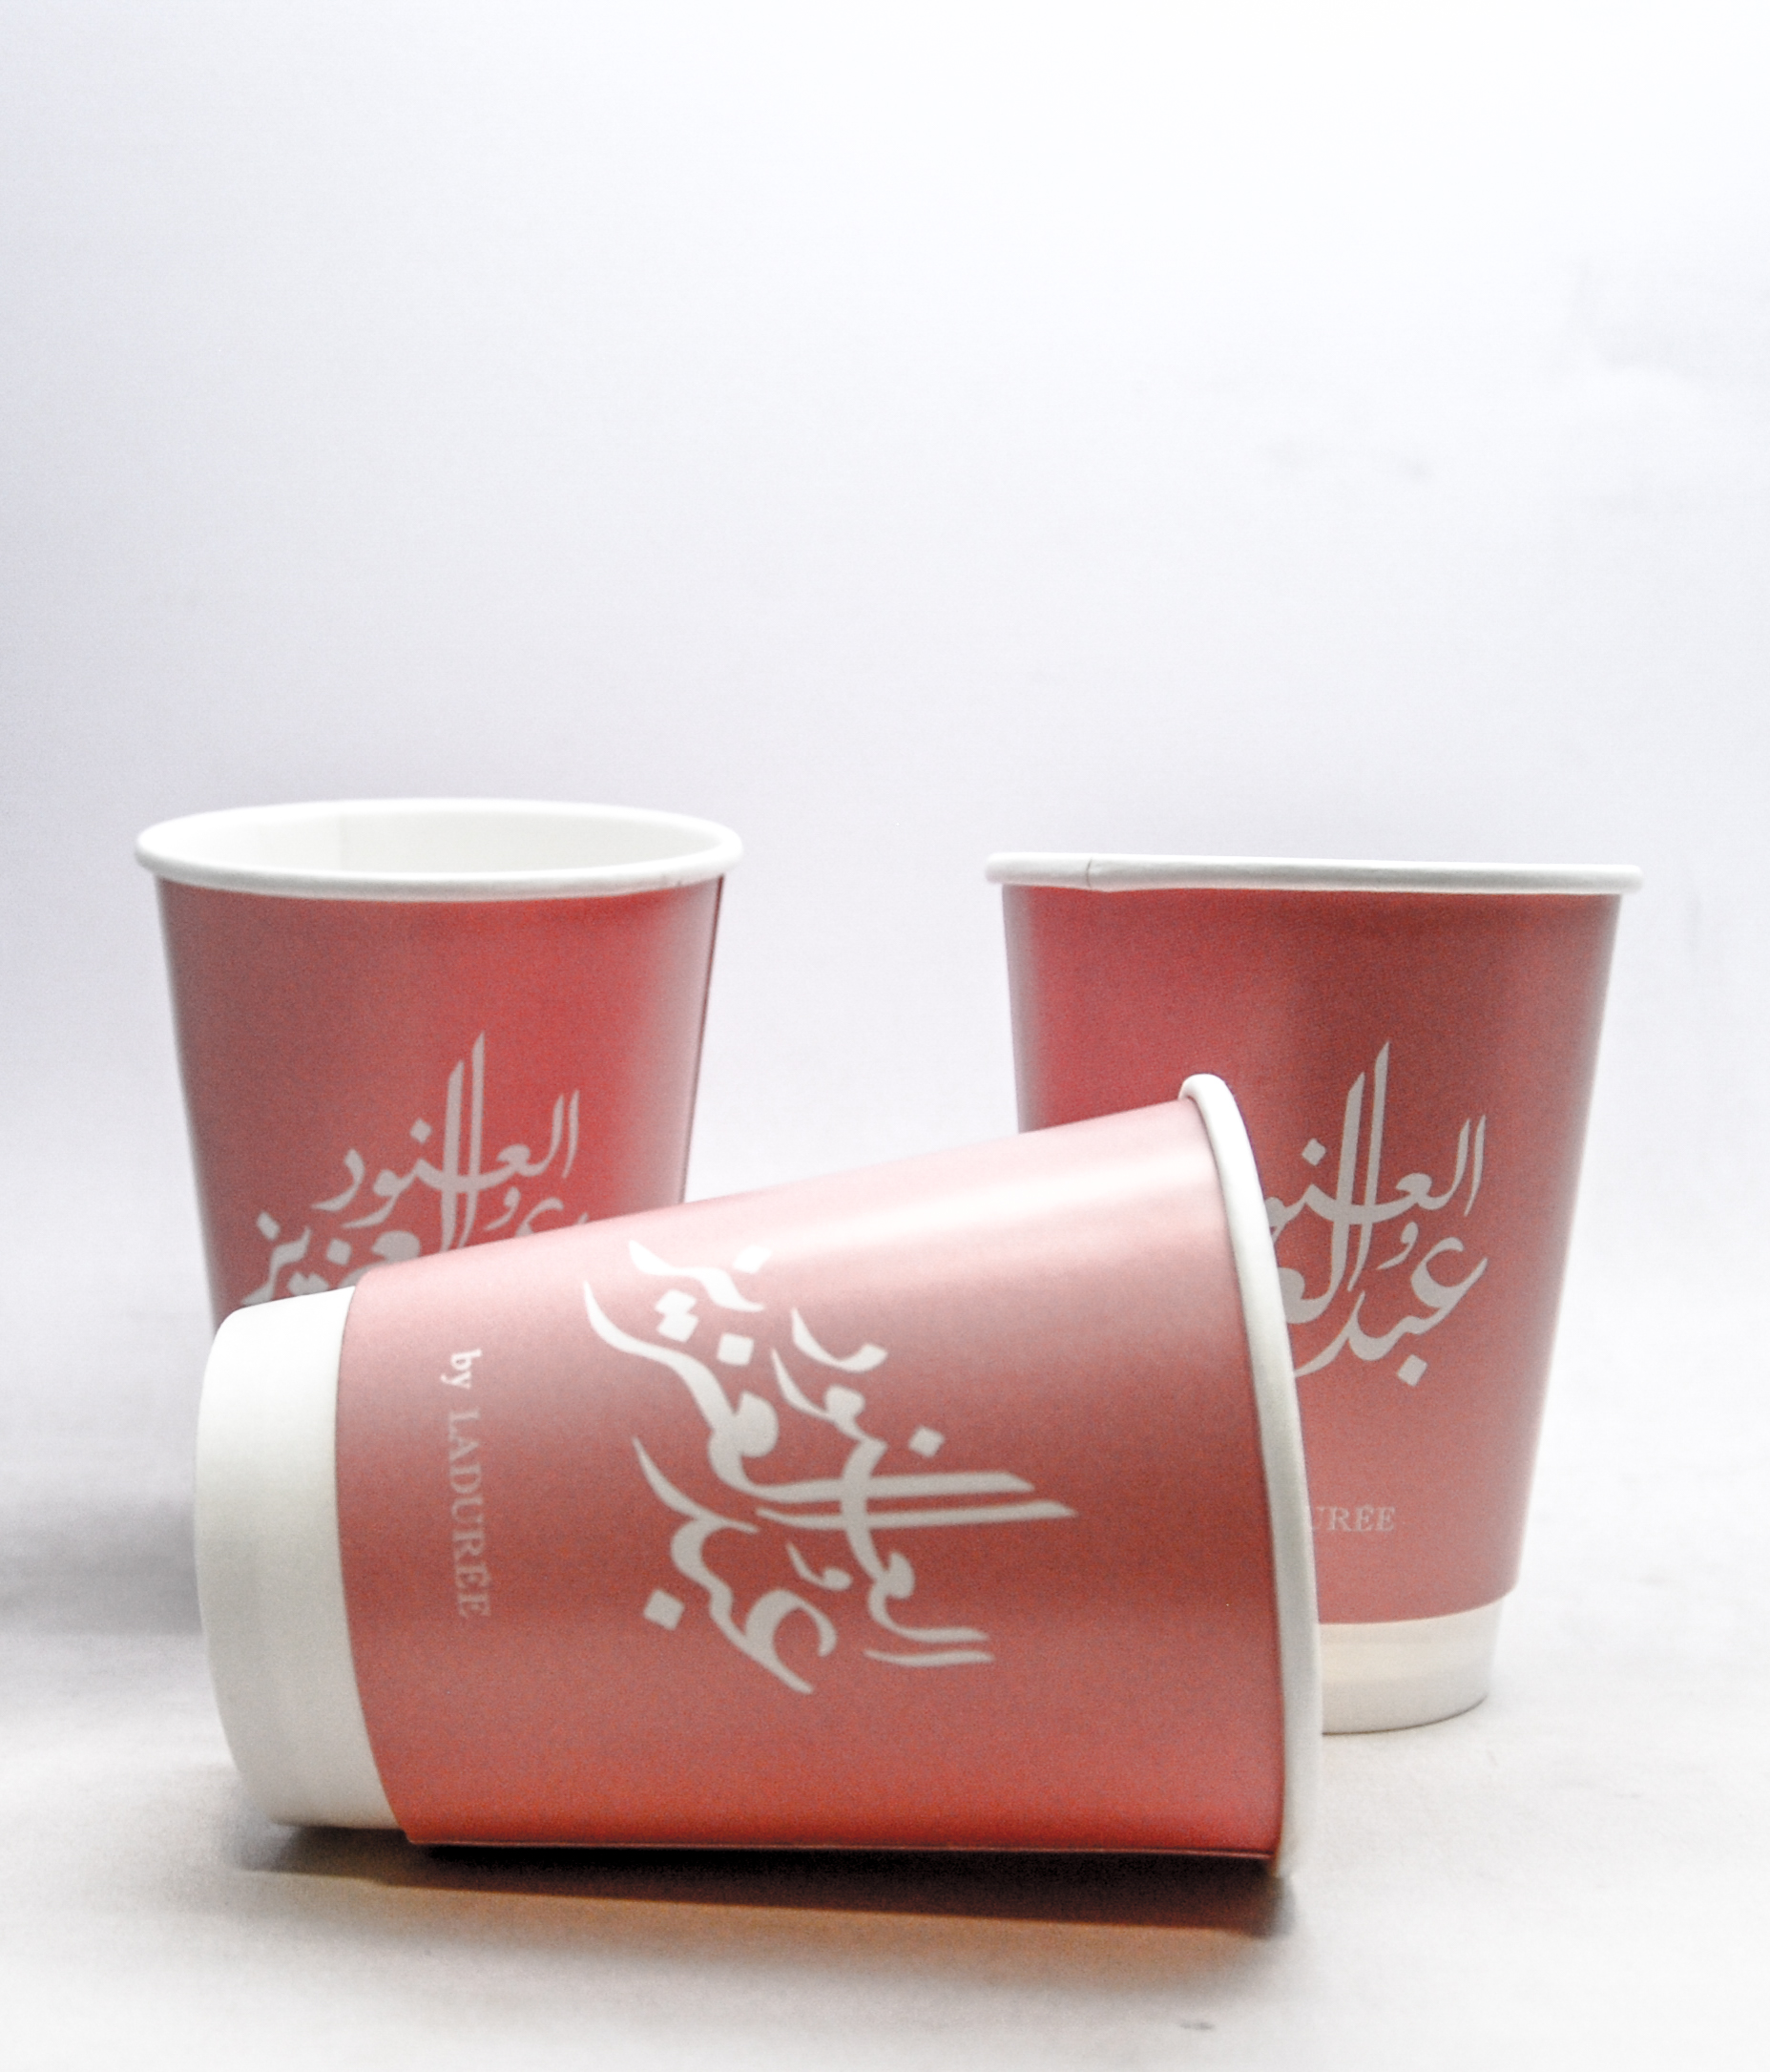 24 Hours Cups